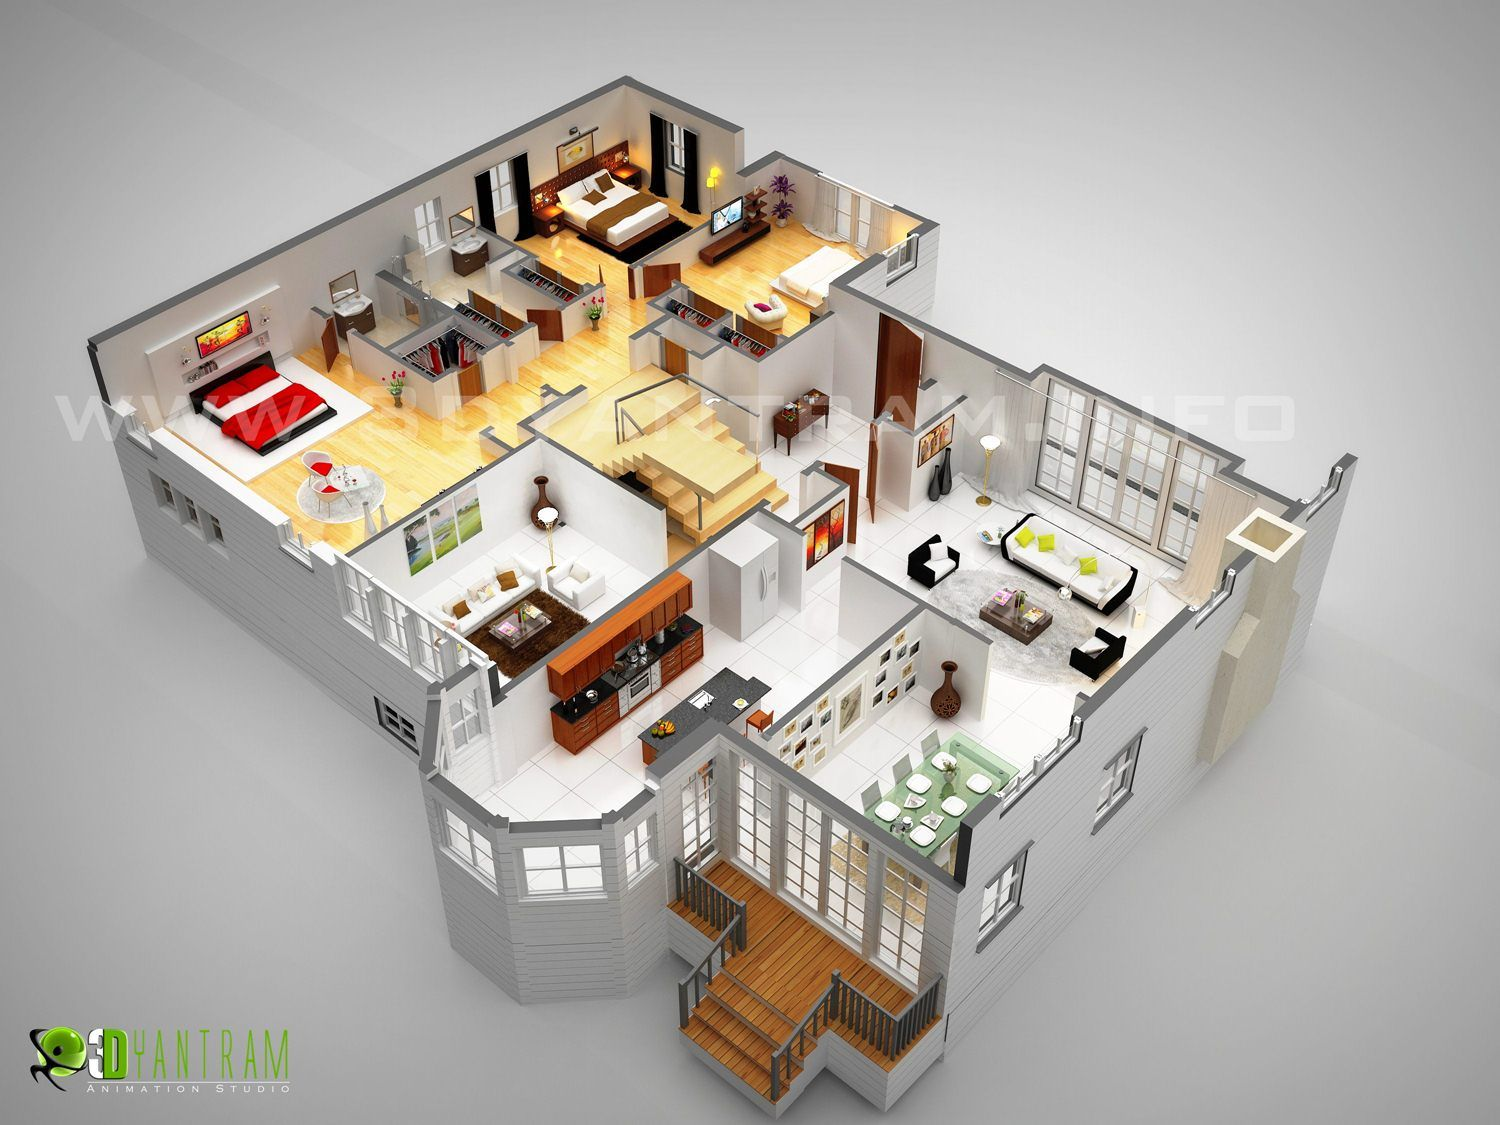 Laxurious residential 3d floor plan paris sims for 3d house design